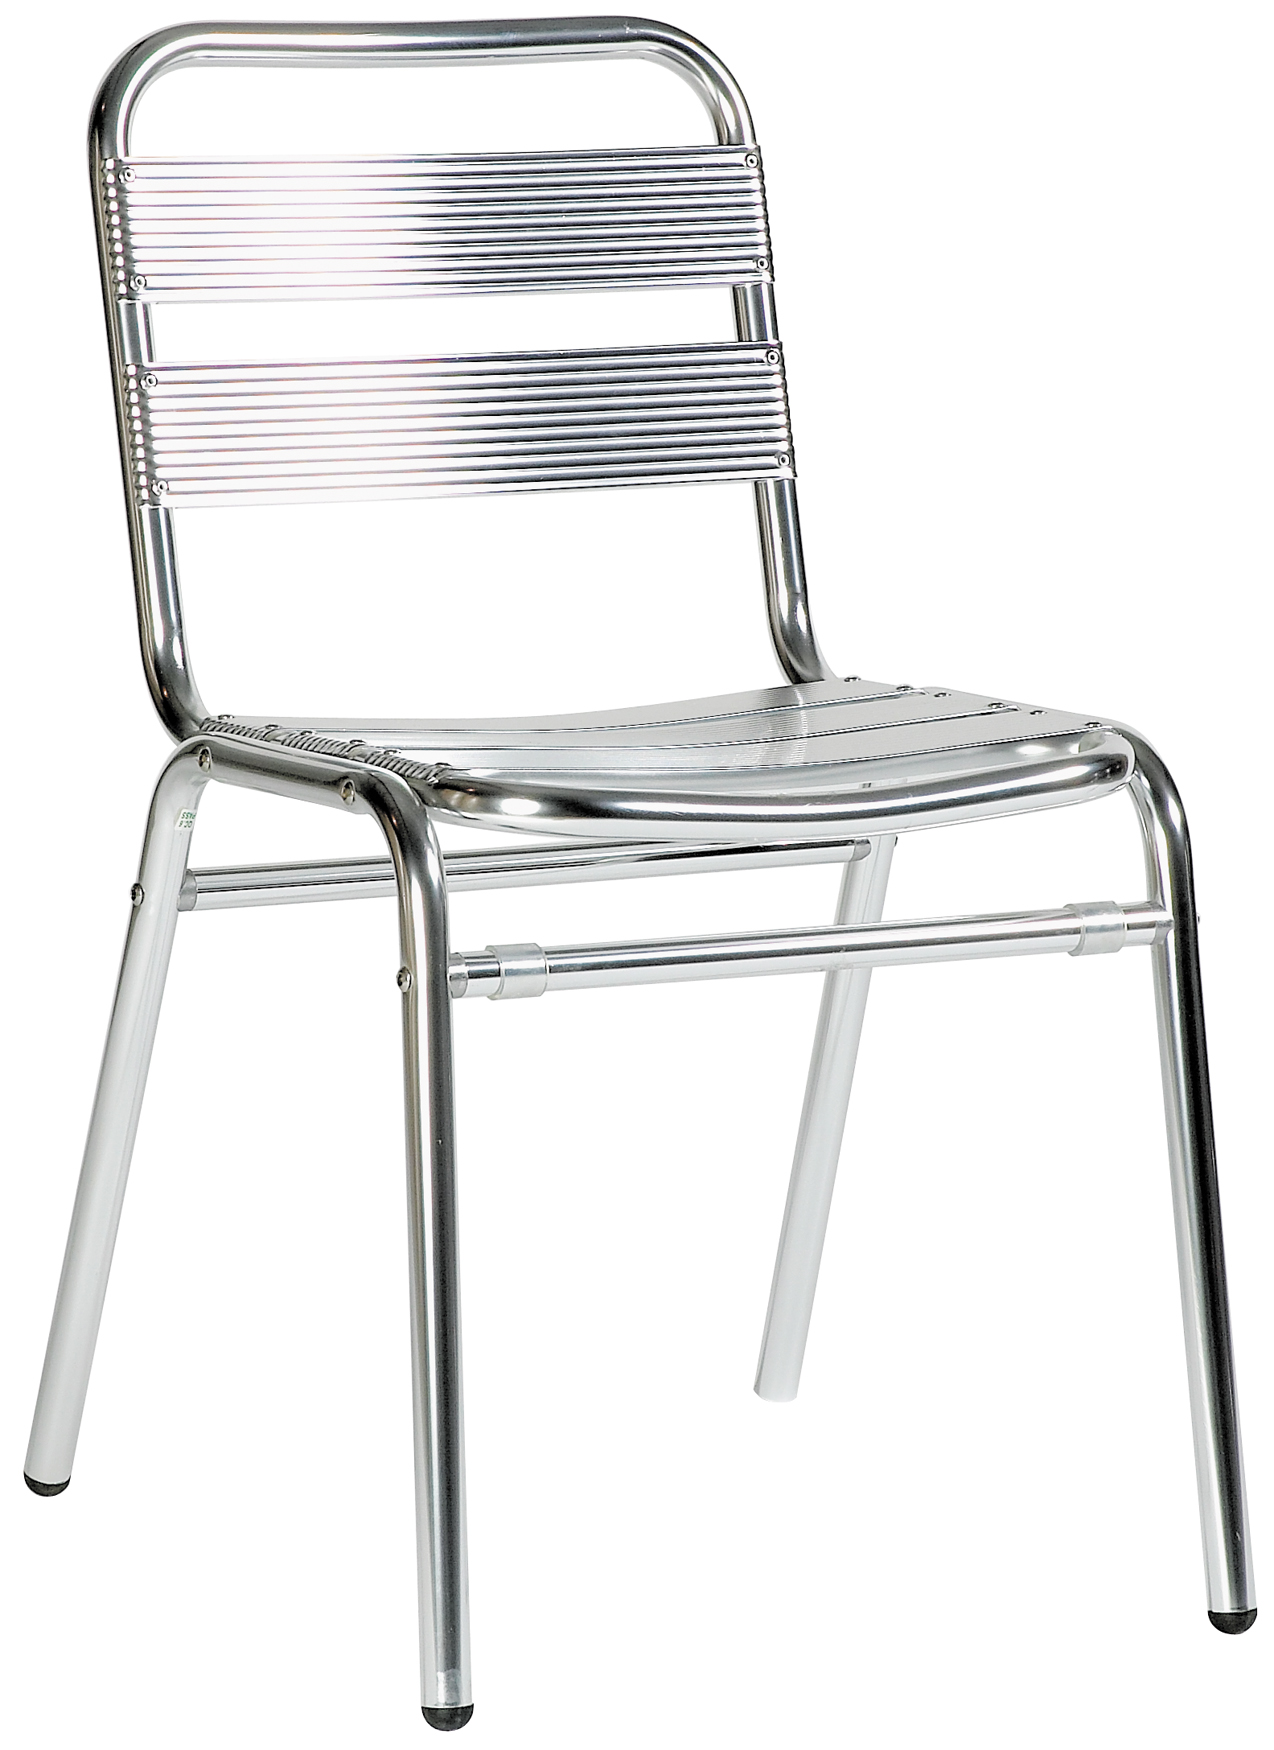 Aluminum Chairs Aluminum Pipe Chair Leisure Chair Outdoor Chair